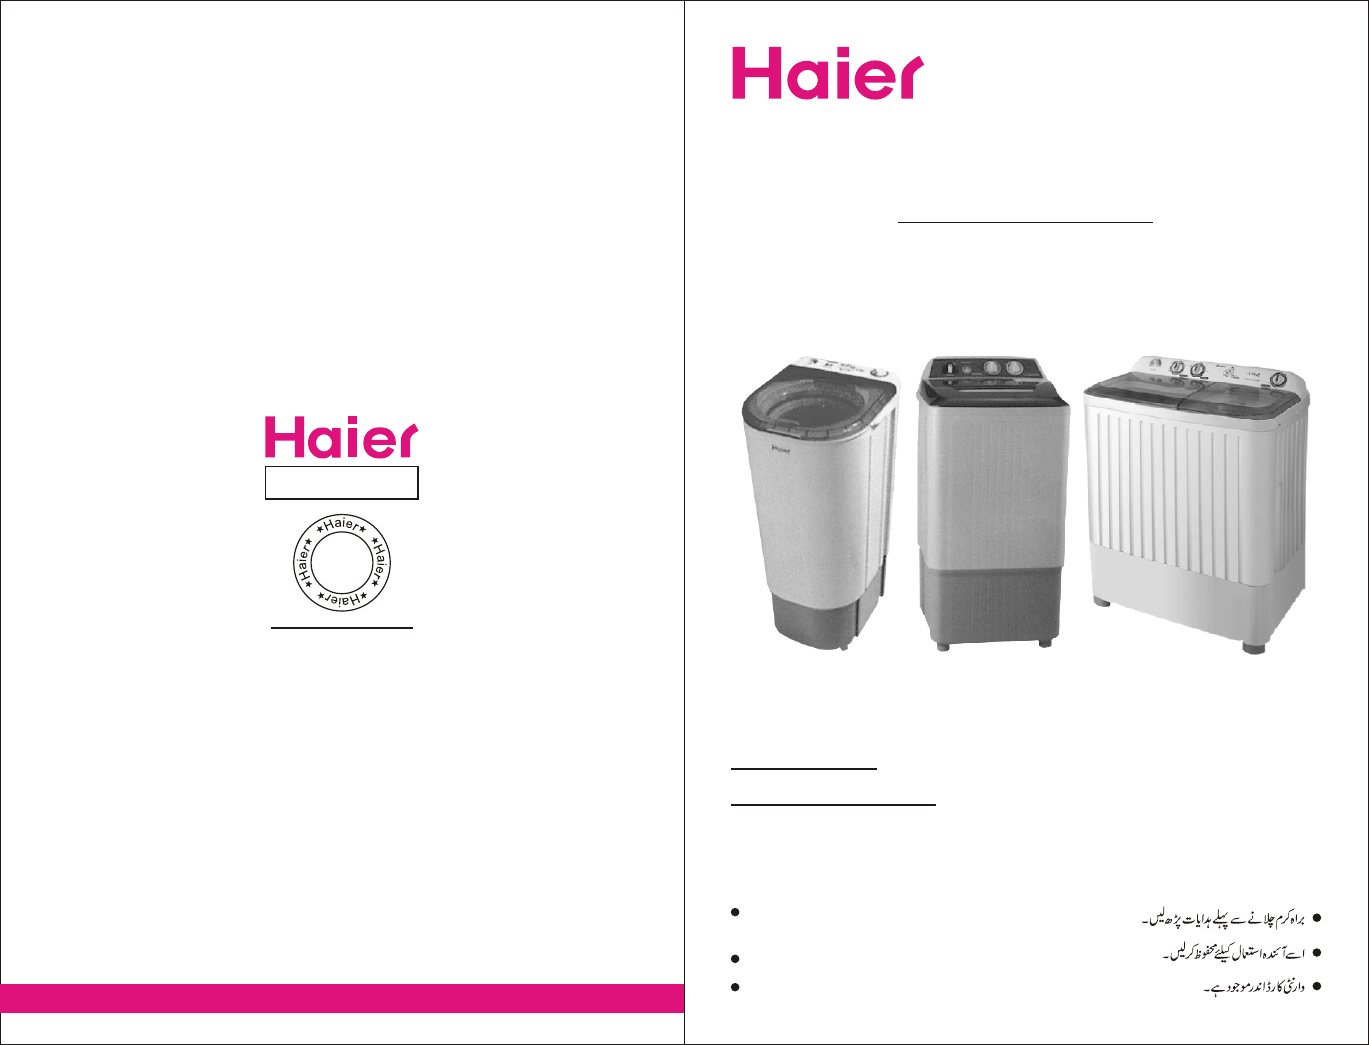 Haier Washer Hwm 100 As Bs Users Manual Twin Tub on